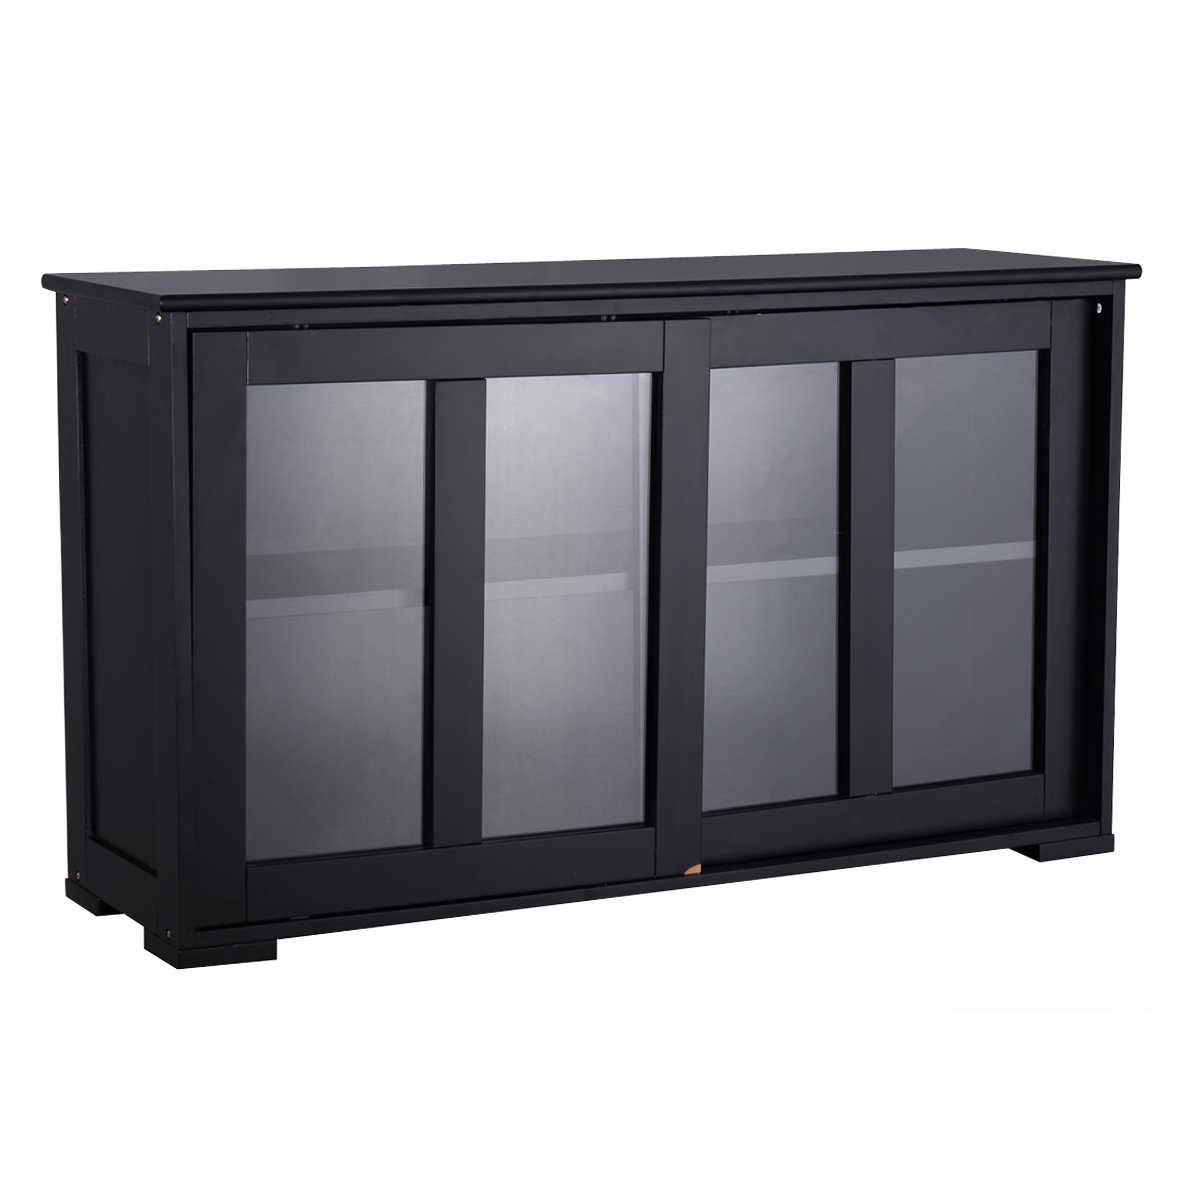 WATERJOY Kitchen Storage Sideboard, Stackable Buffet Storage Cabinet with Sliding Door Tempered-Glass Panels for Home Kitchen, Antique Black by WATERJOY (Image #4)